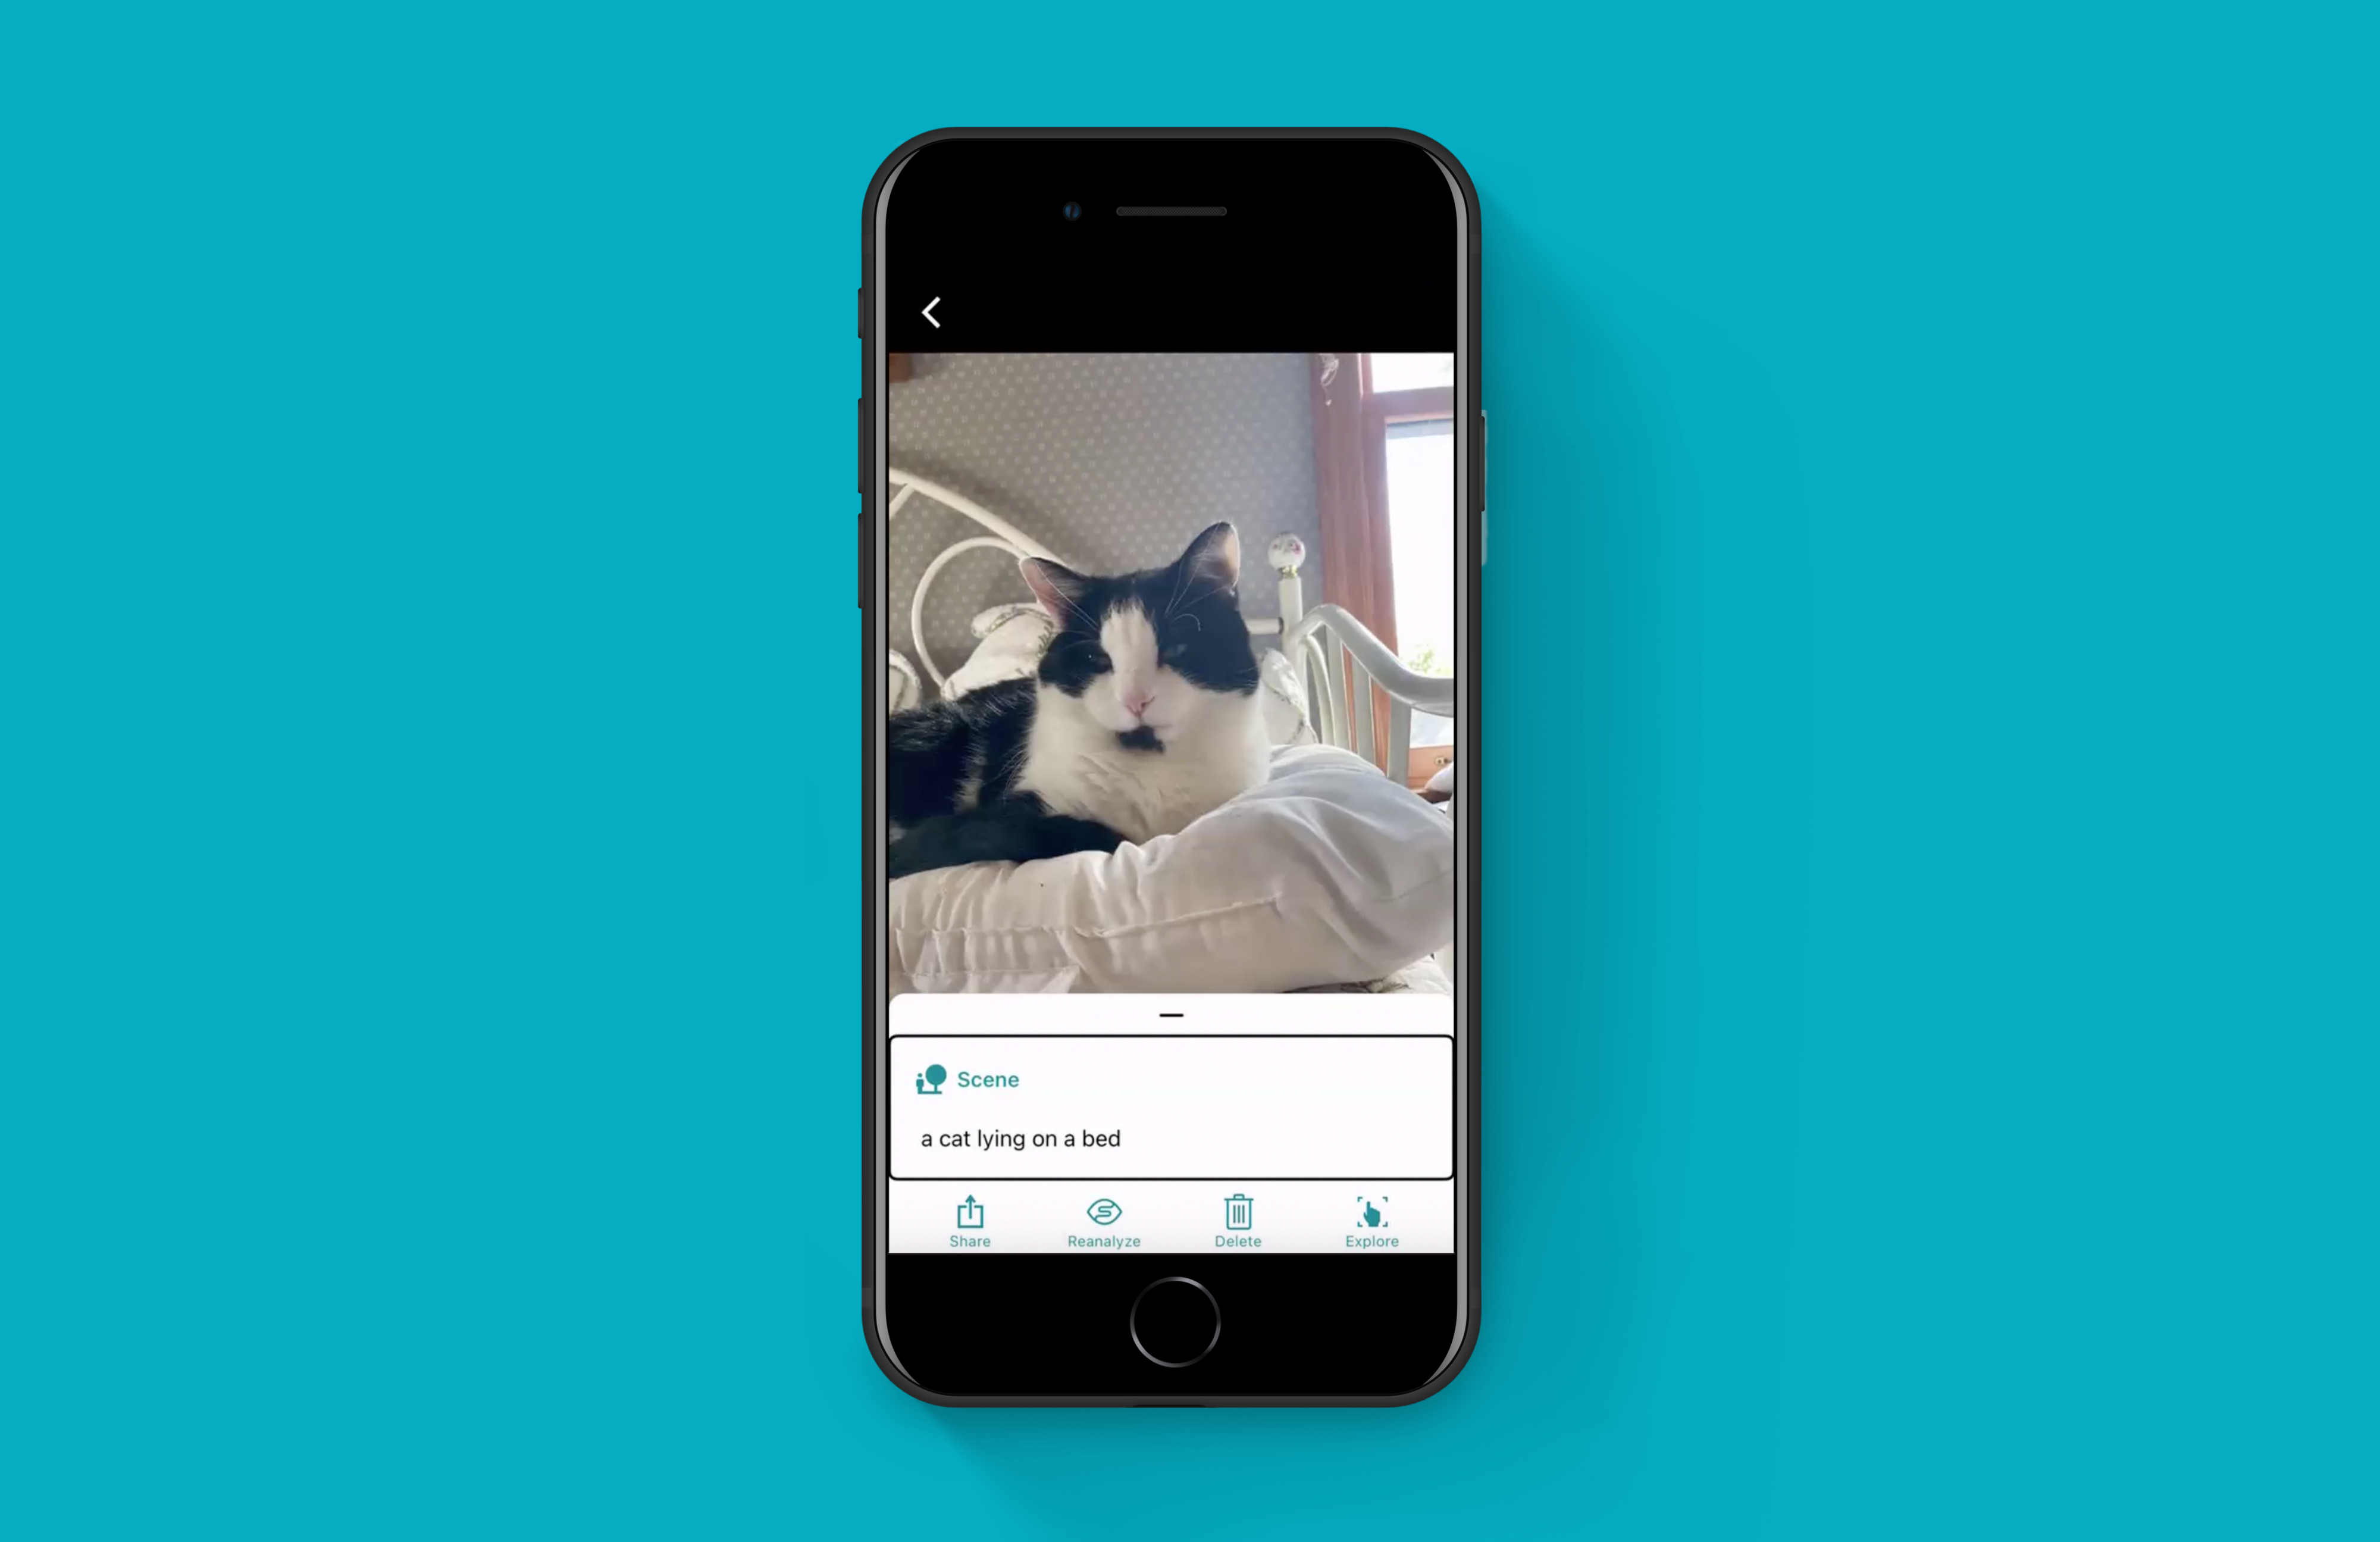 A cat captured with Seeing AI during the test sessions and described as a cat lying on the bed (correct)